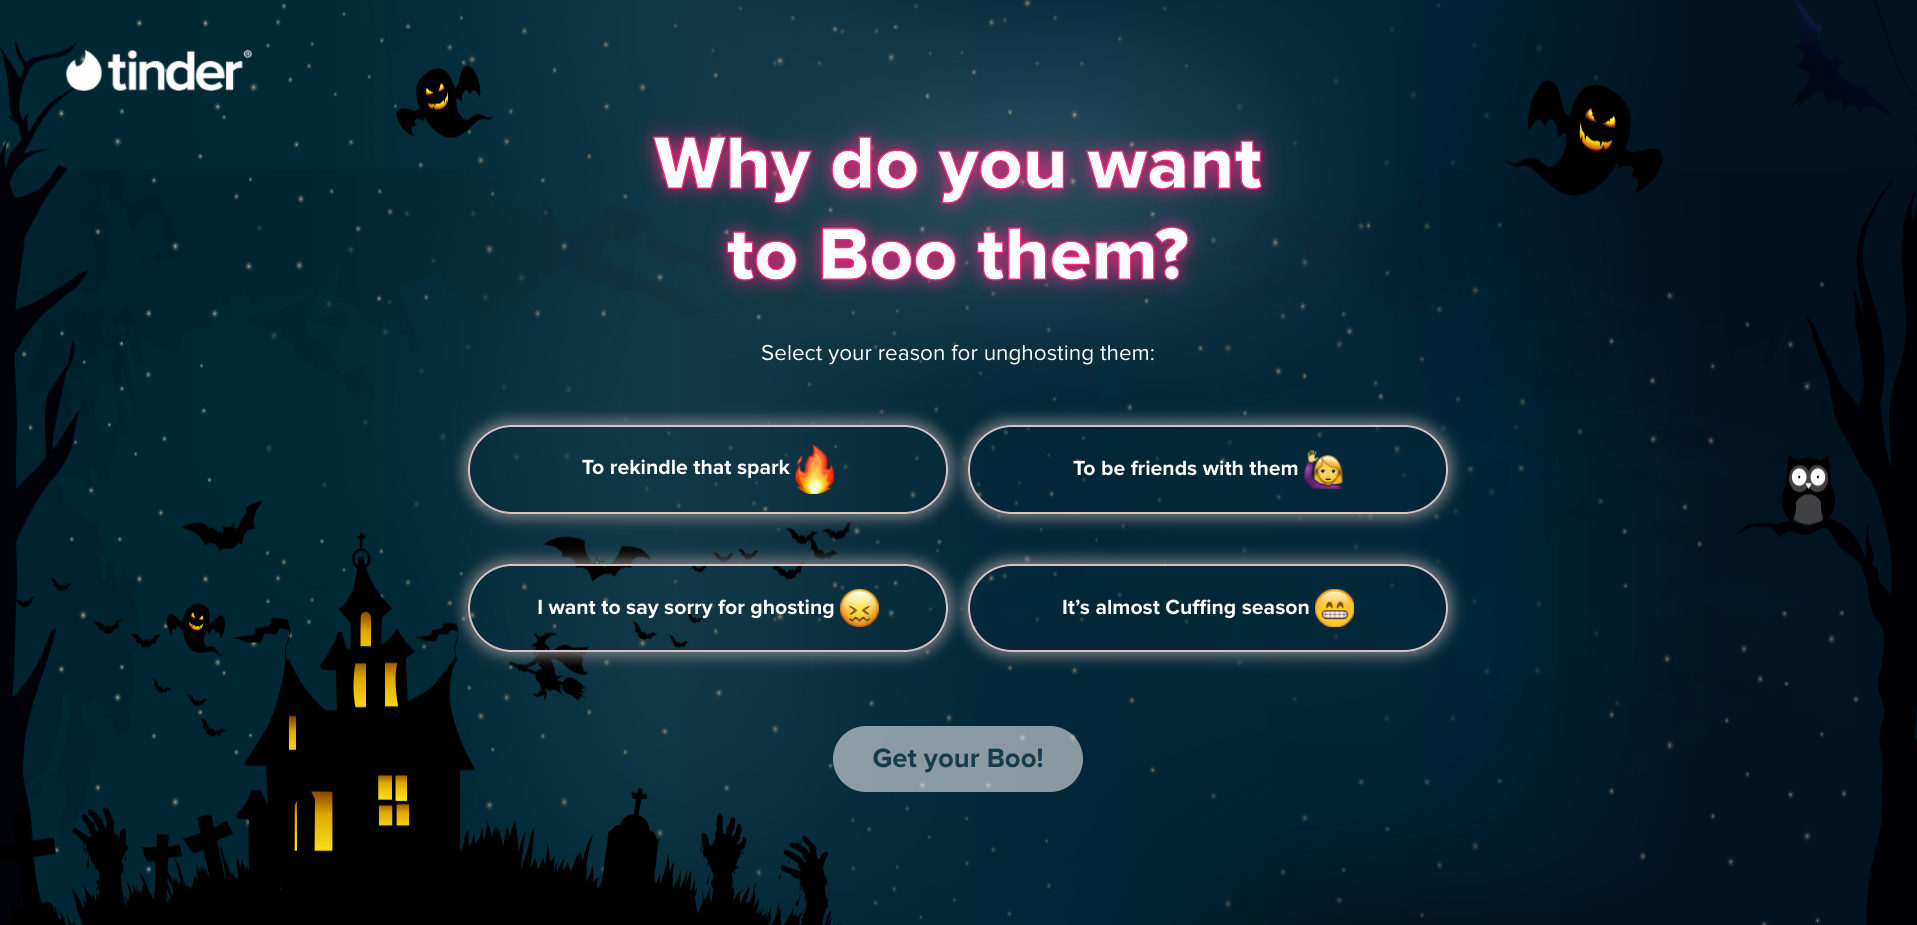 Tinder's New Website Generates Messages to Save 'Ghost' Conversations